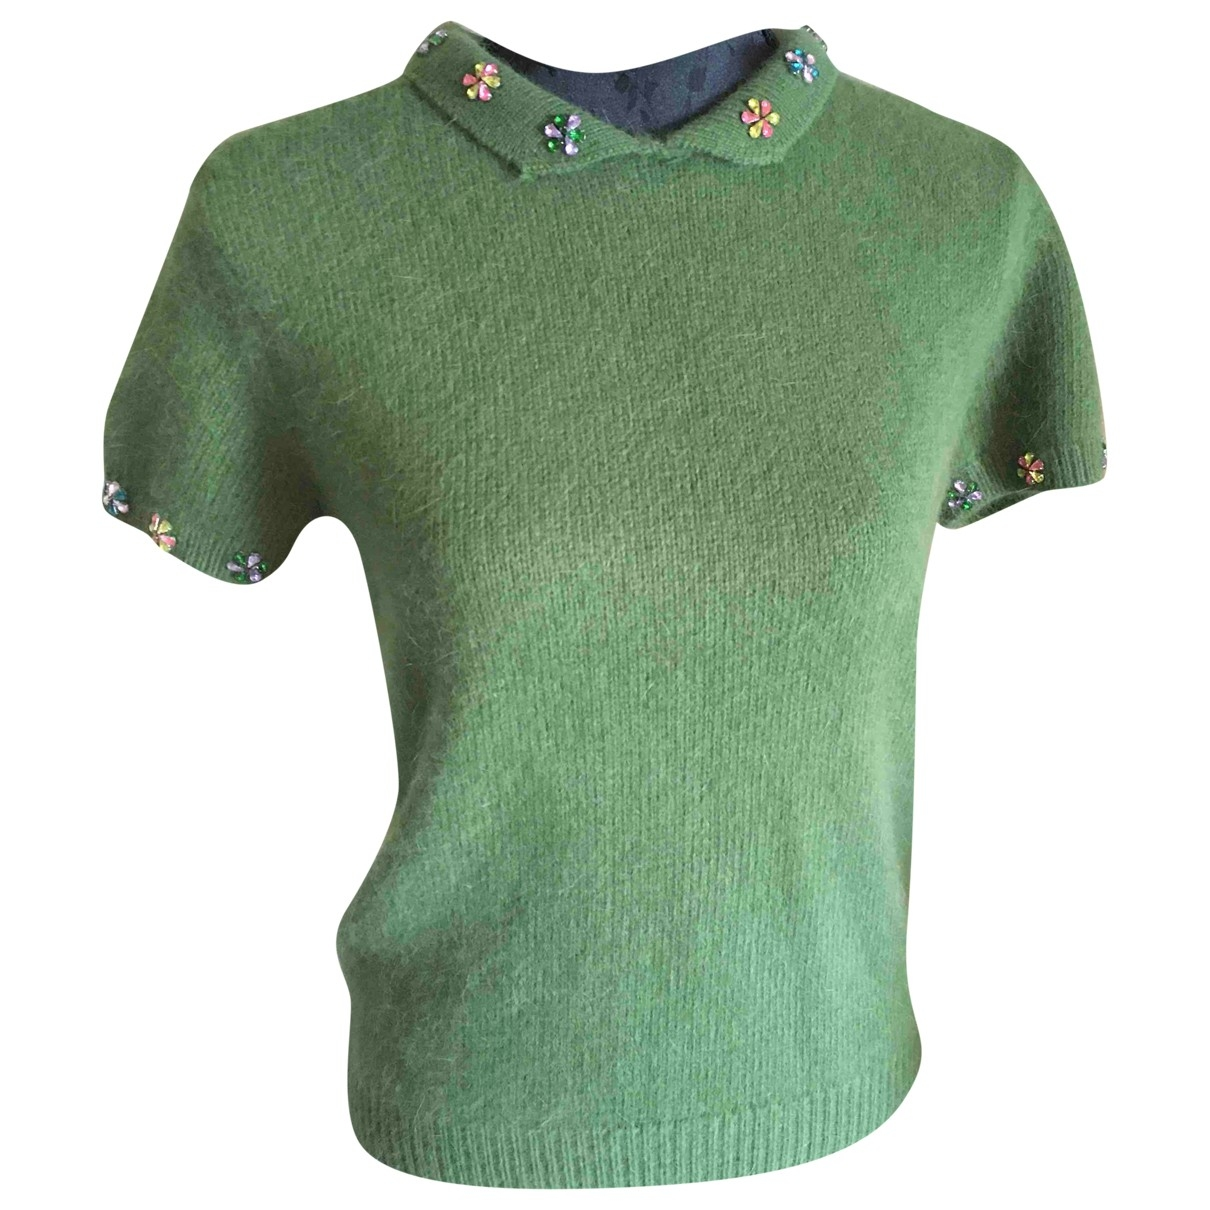 House Of Holland \N Green Wool  top for Women 10 UK